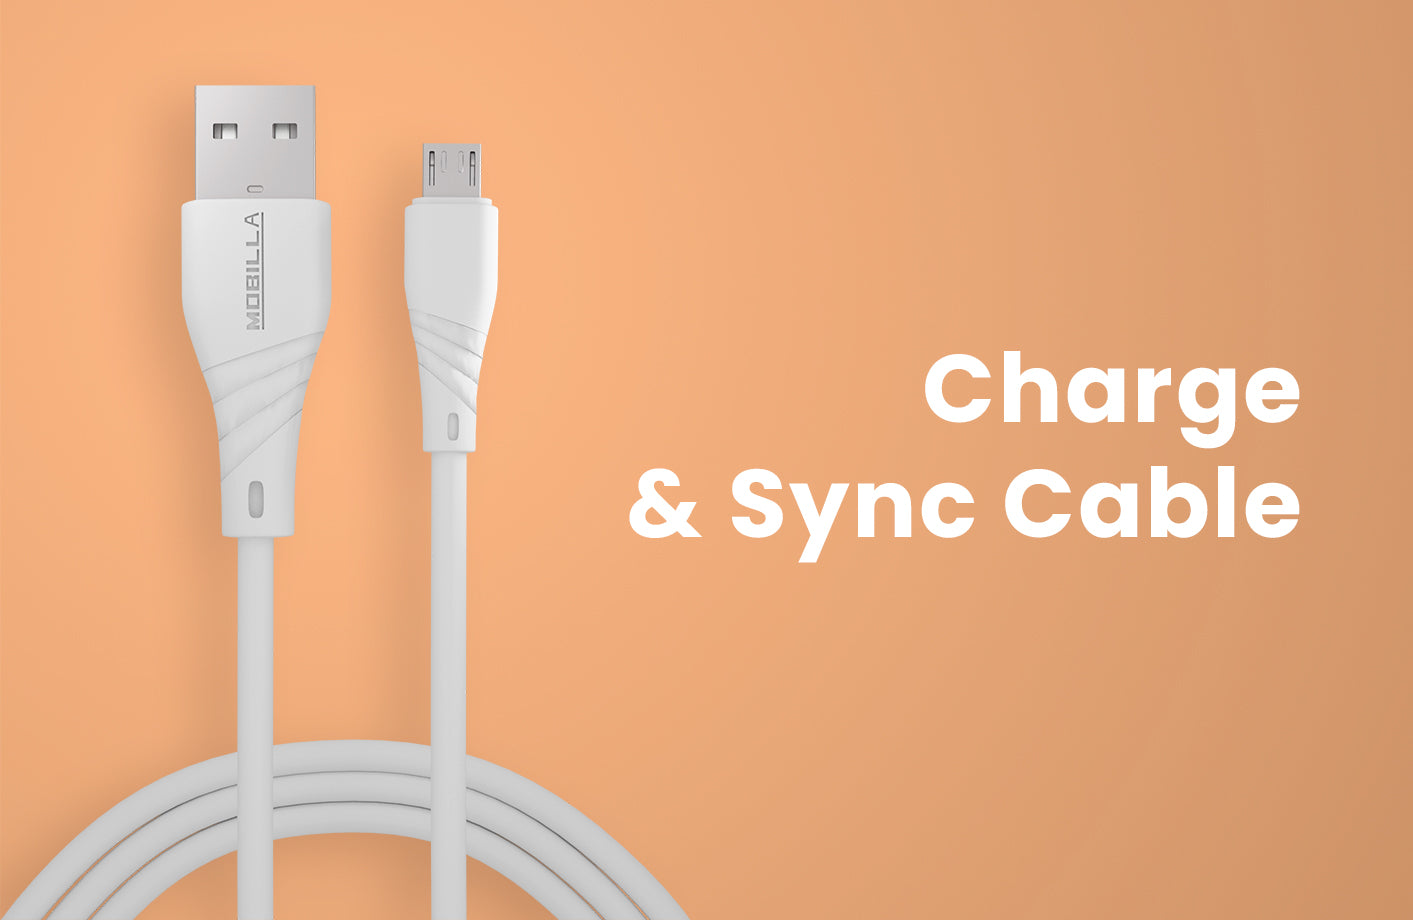 Charge and Sync Cable